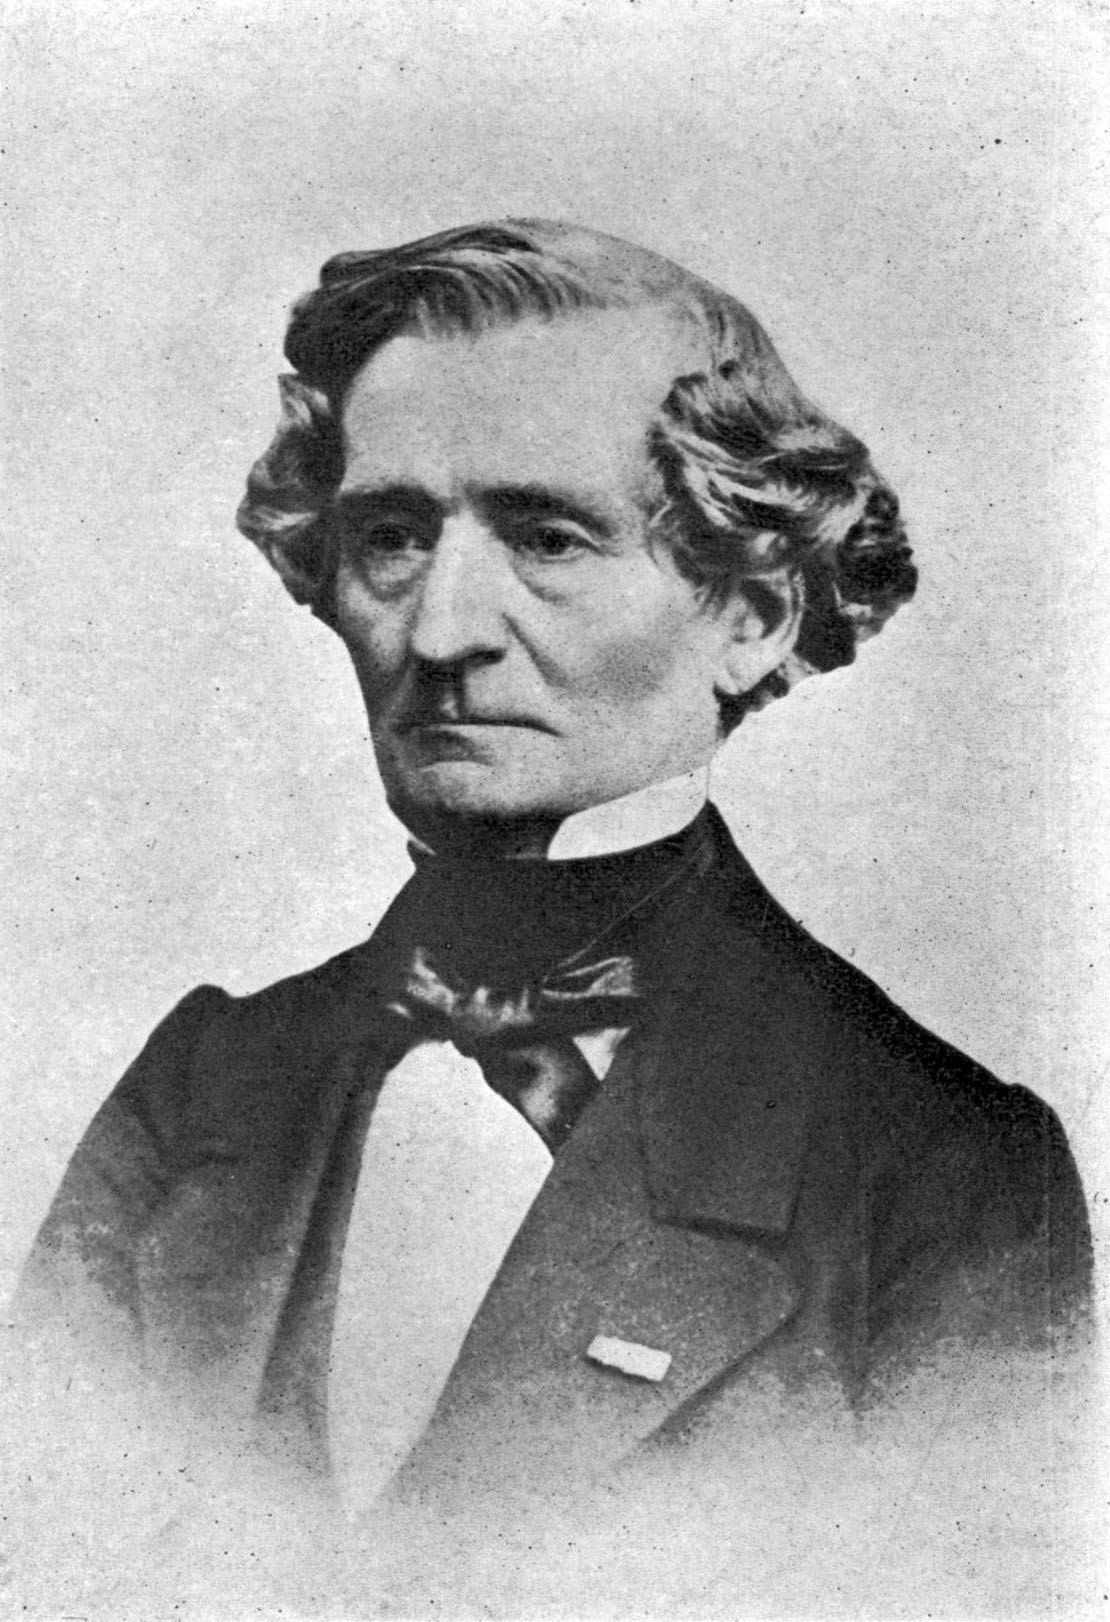 http://upload.wikimedia.org/wikipedia/commons/d/d4/Berlioz_ill05.jpg